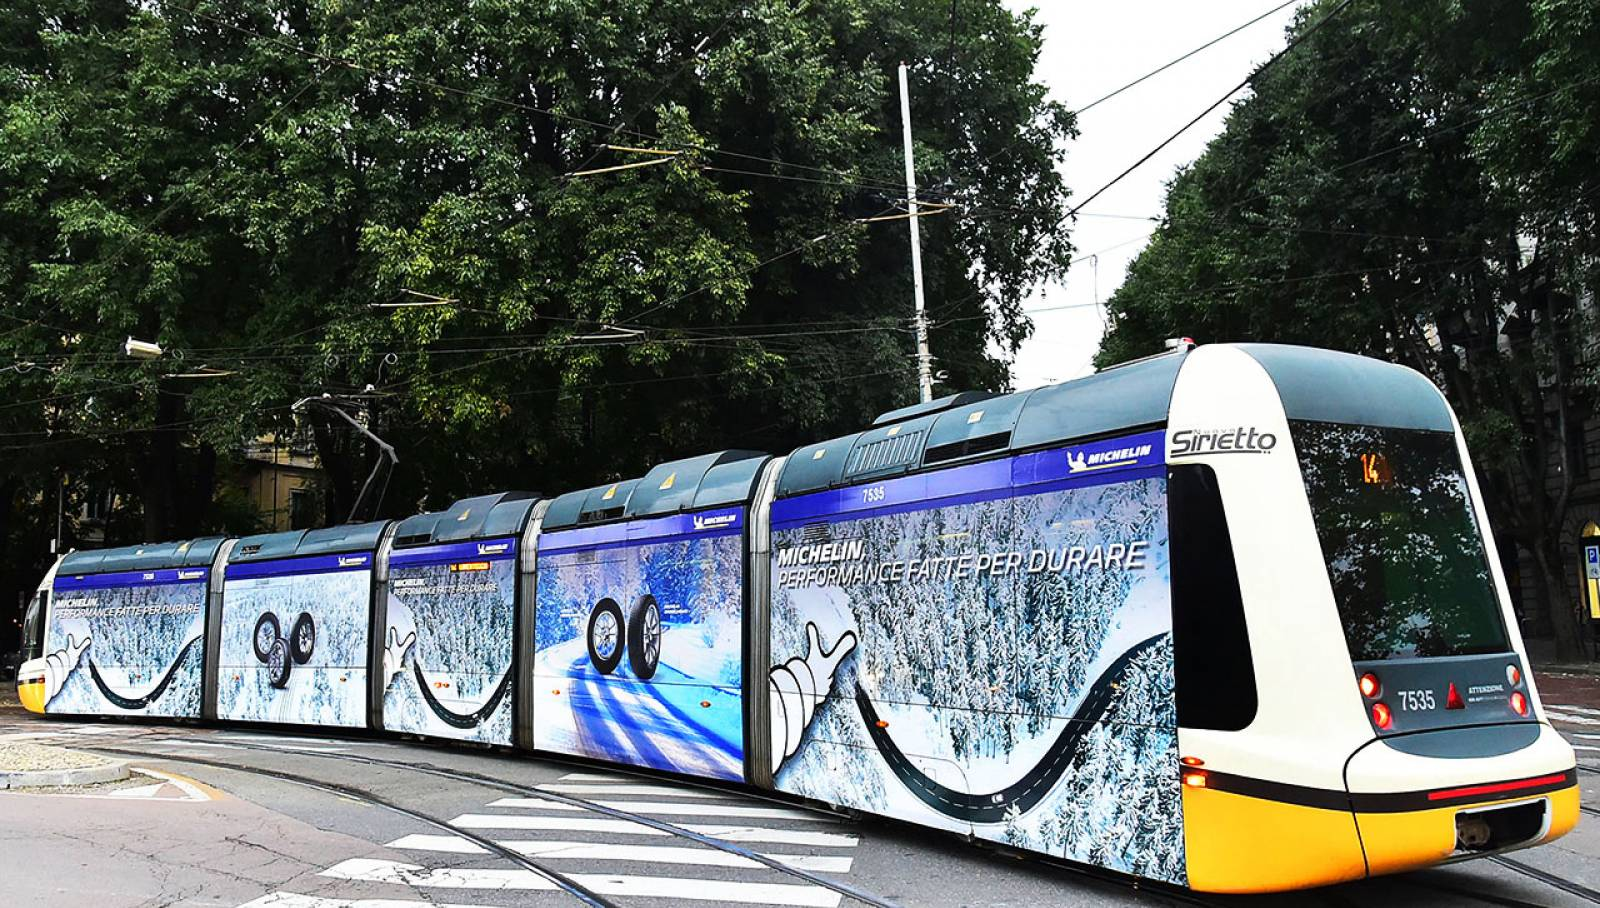 IGPDecaux Milan OOH advertising on tram Full-Wrap for Michelin